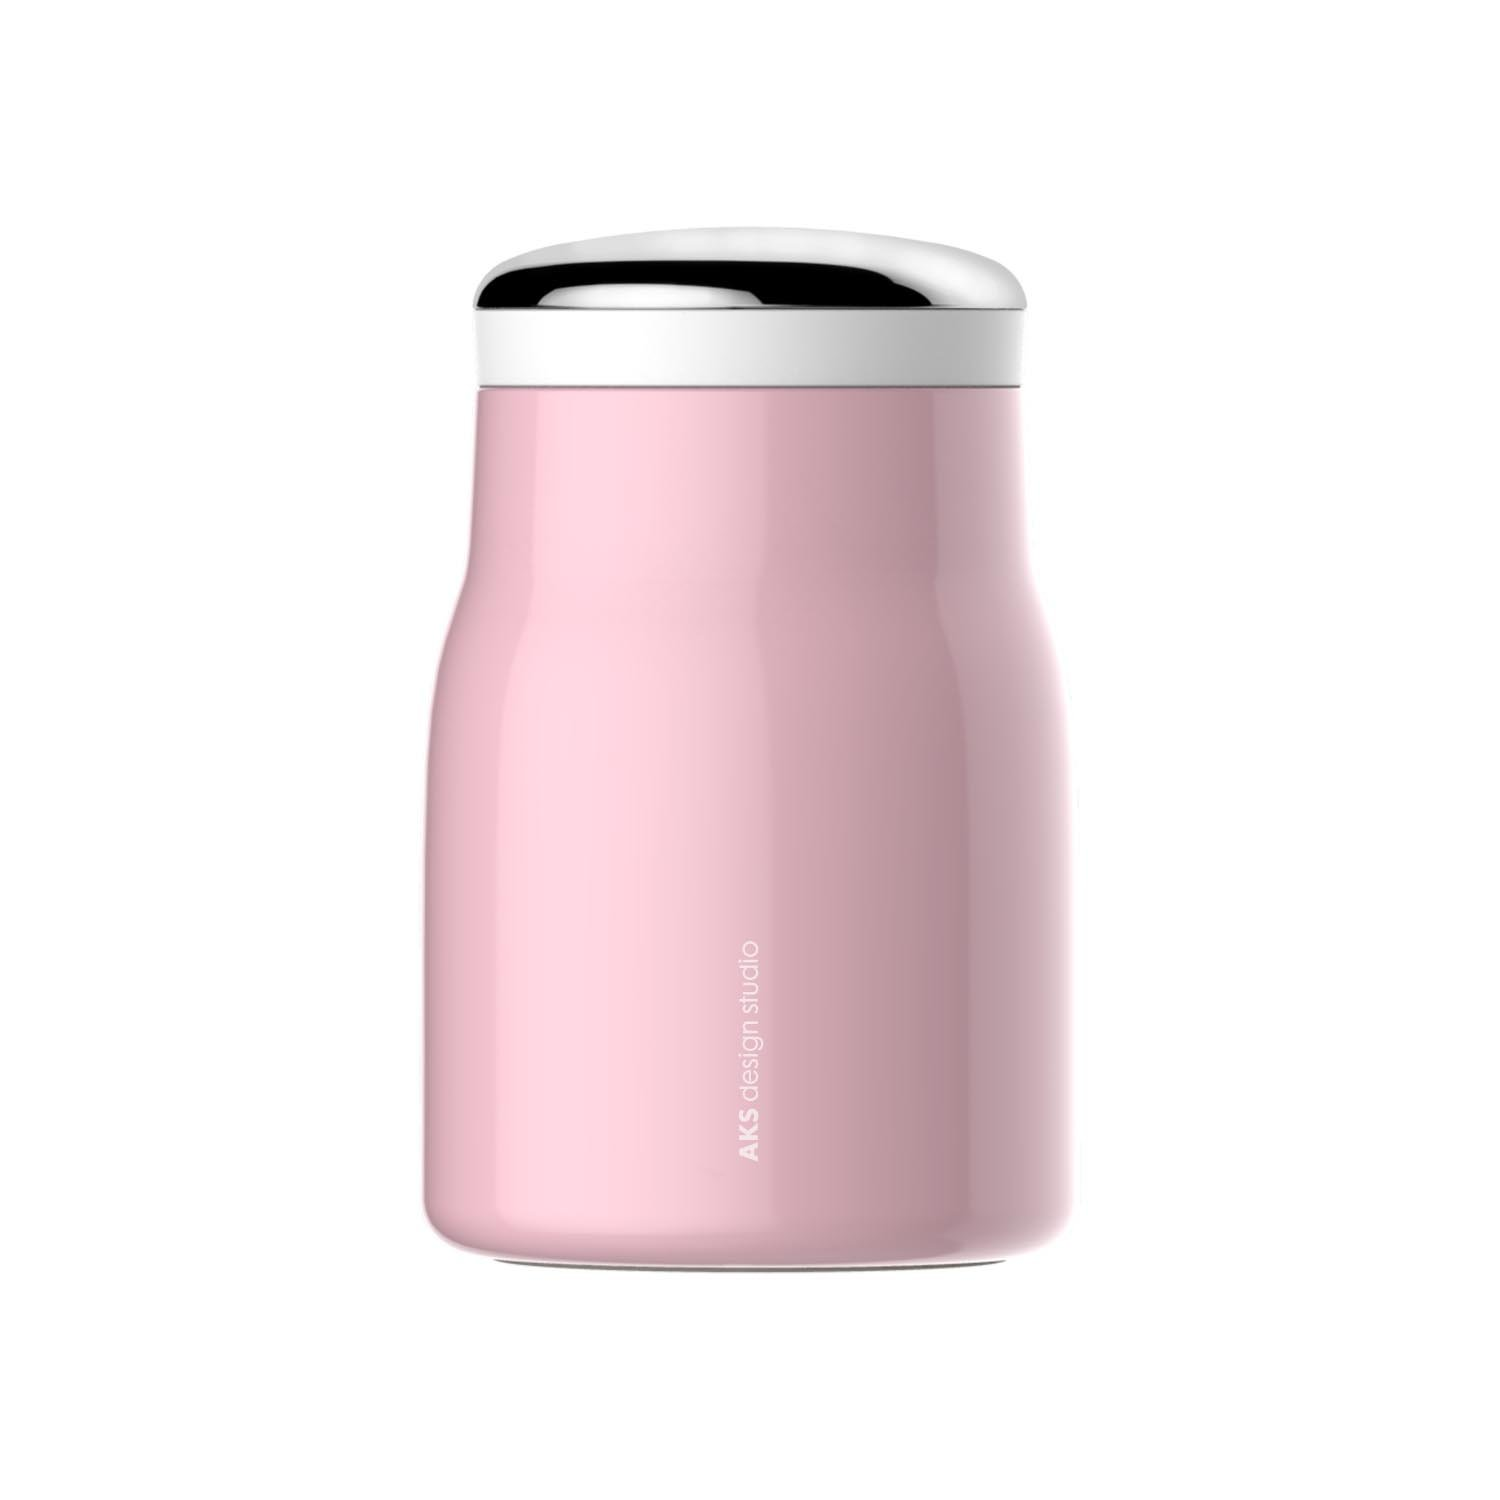 AKS Vacuum Insulated Stainless Steel Food Jar, 16 Oz with a carrying bag (Pink)